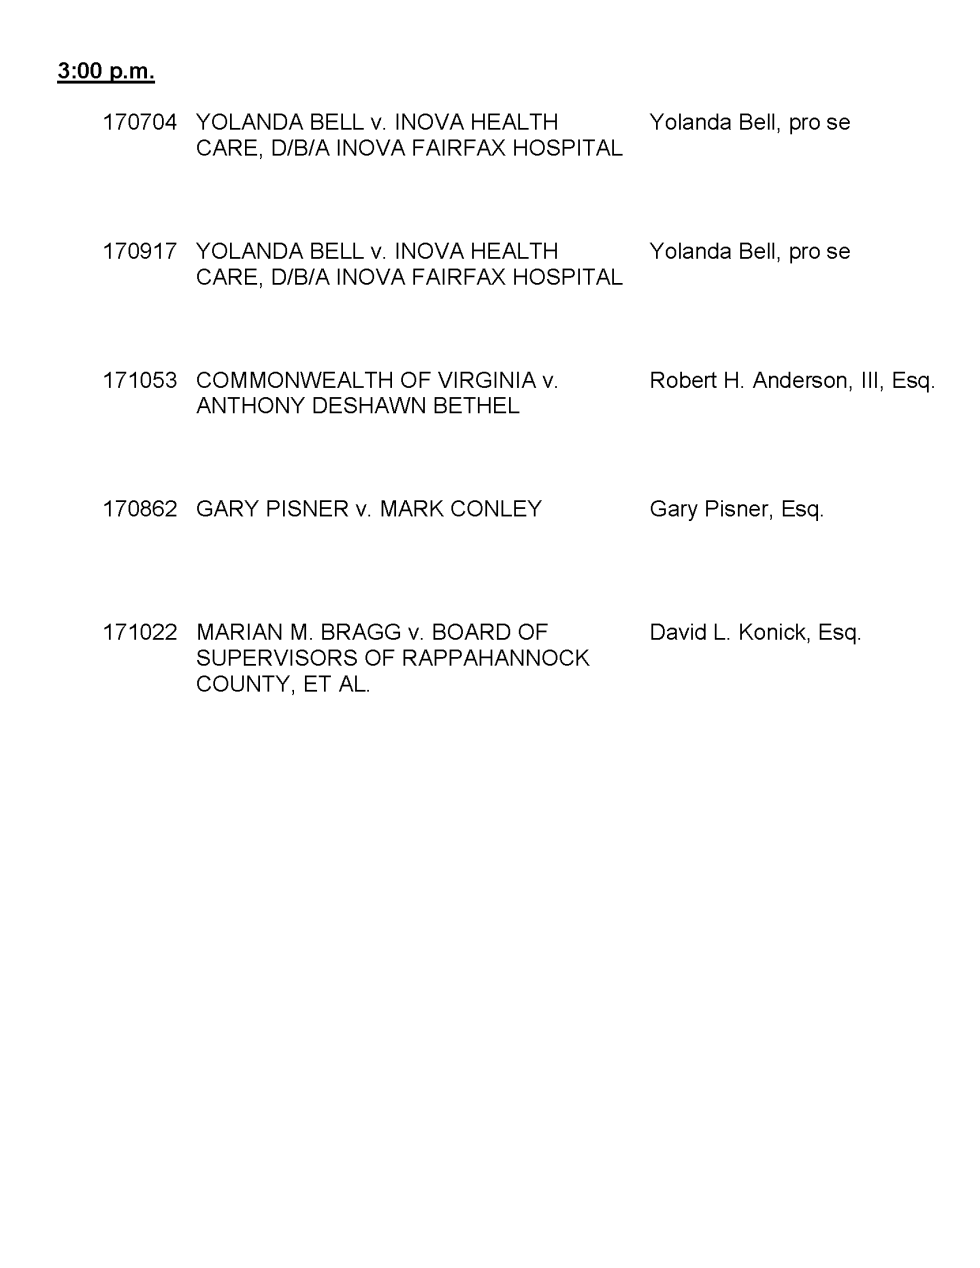 Supreme Court of Virginia - December 5, 2017 Docket-1_Page_3